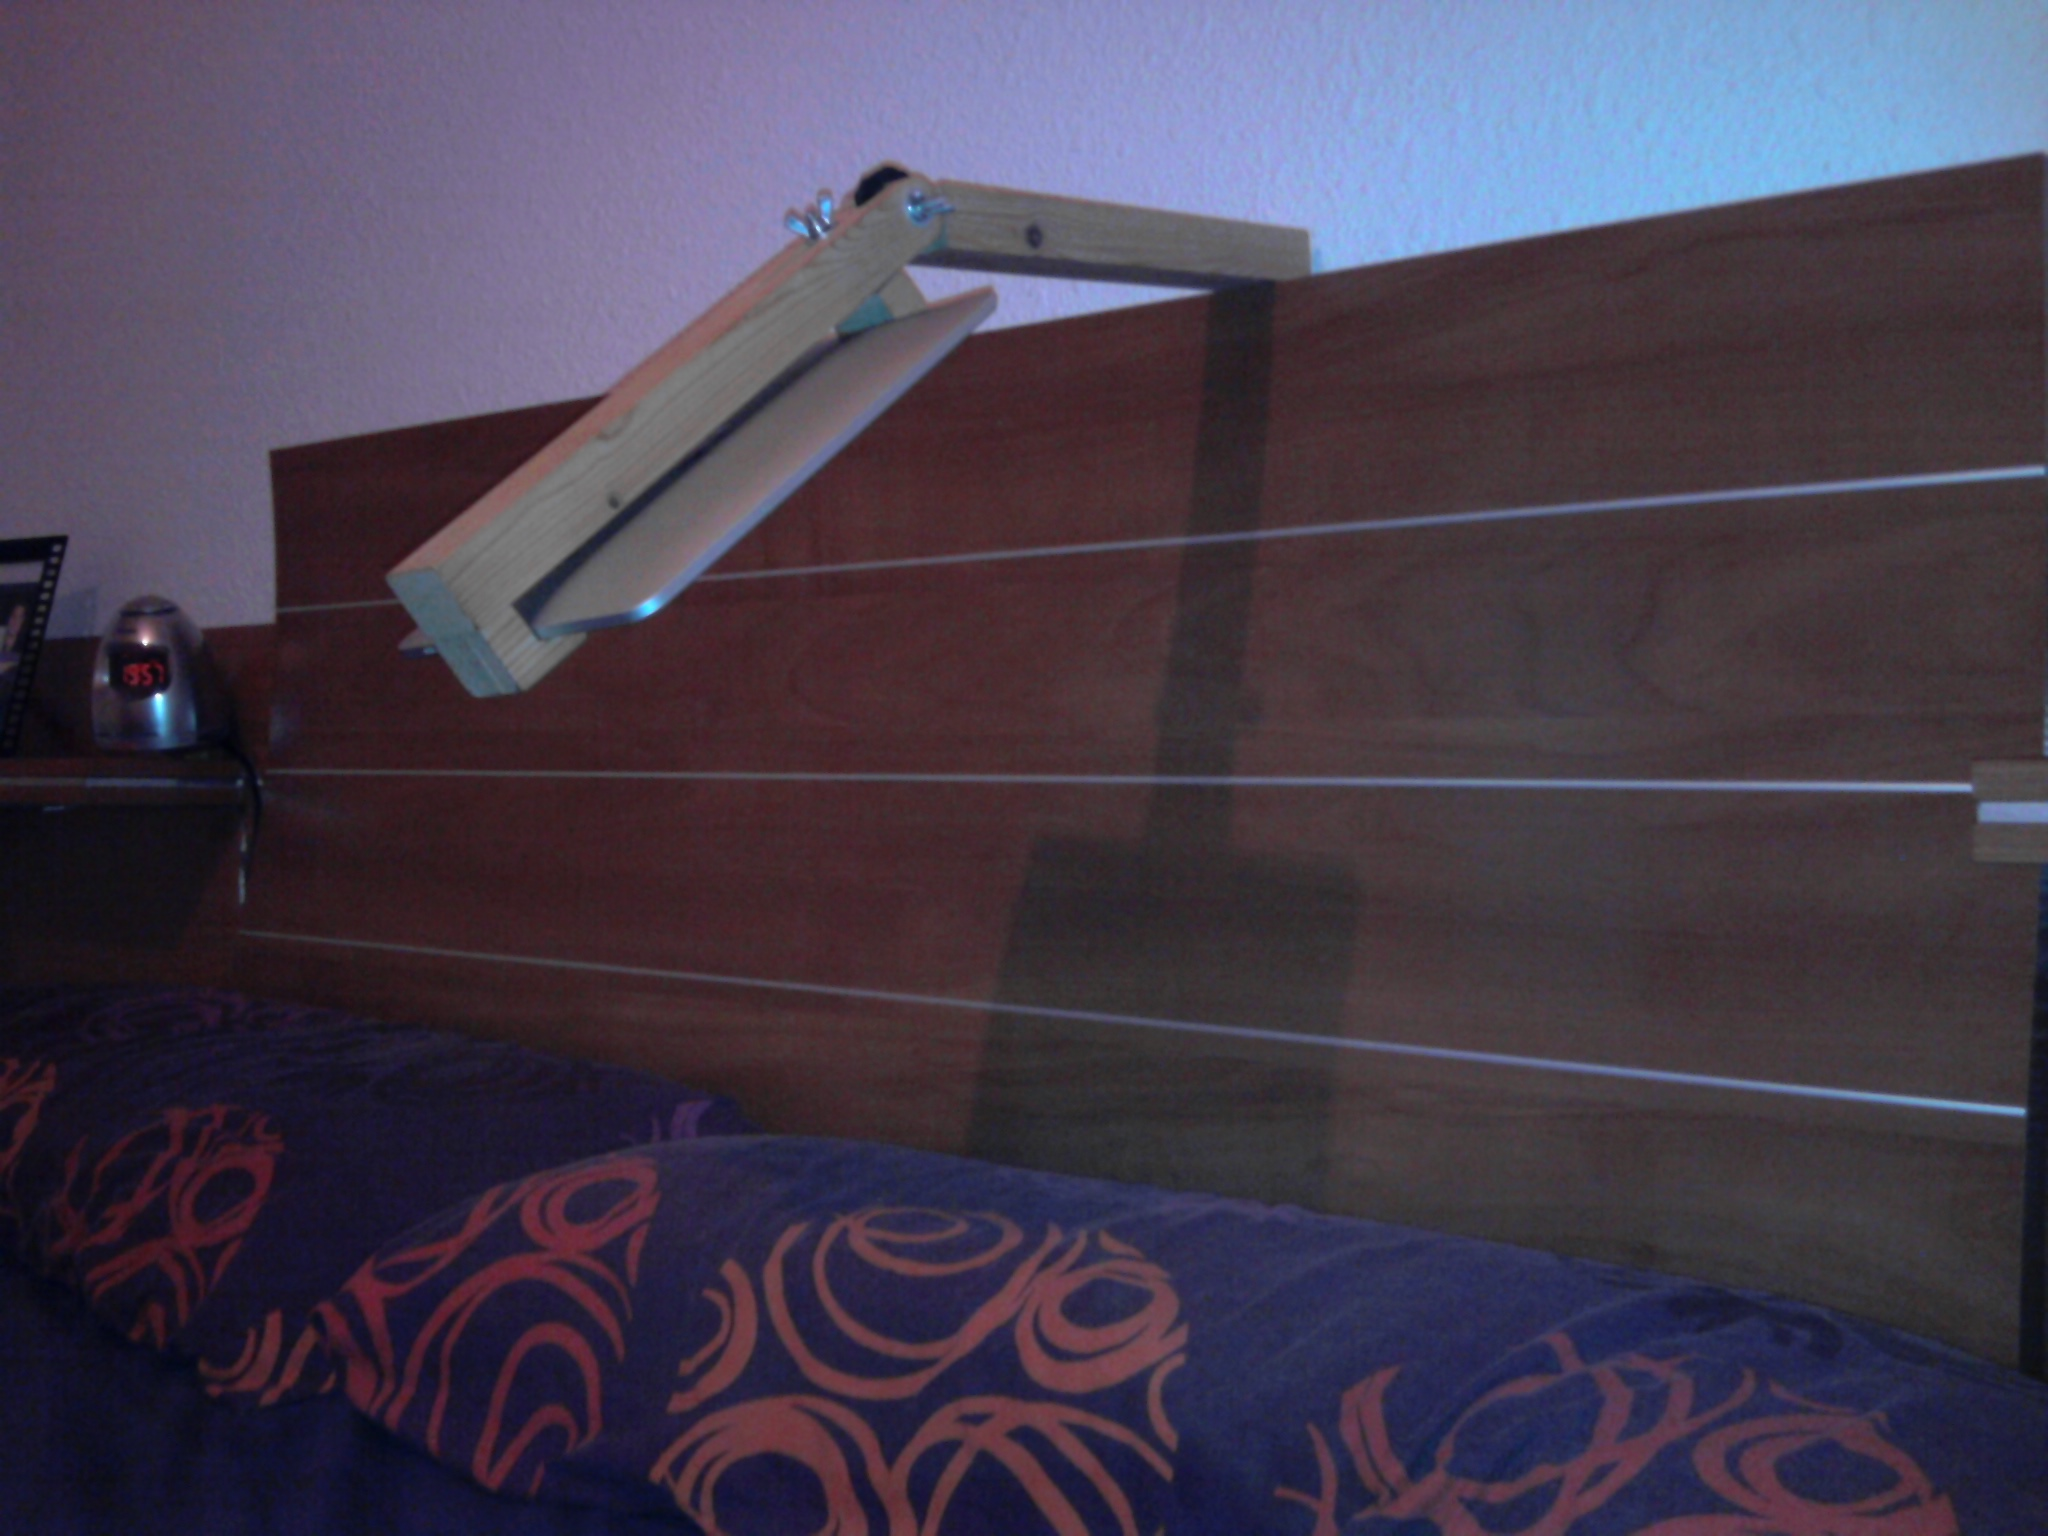 Picture of Support for the Head of the Bed to Put Ipad